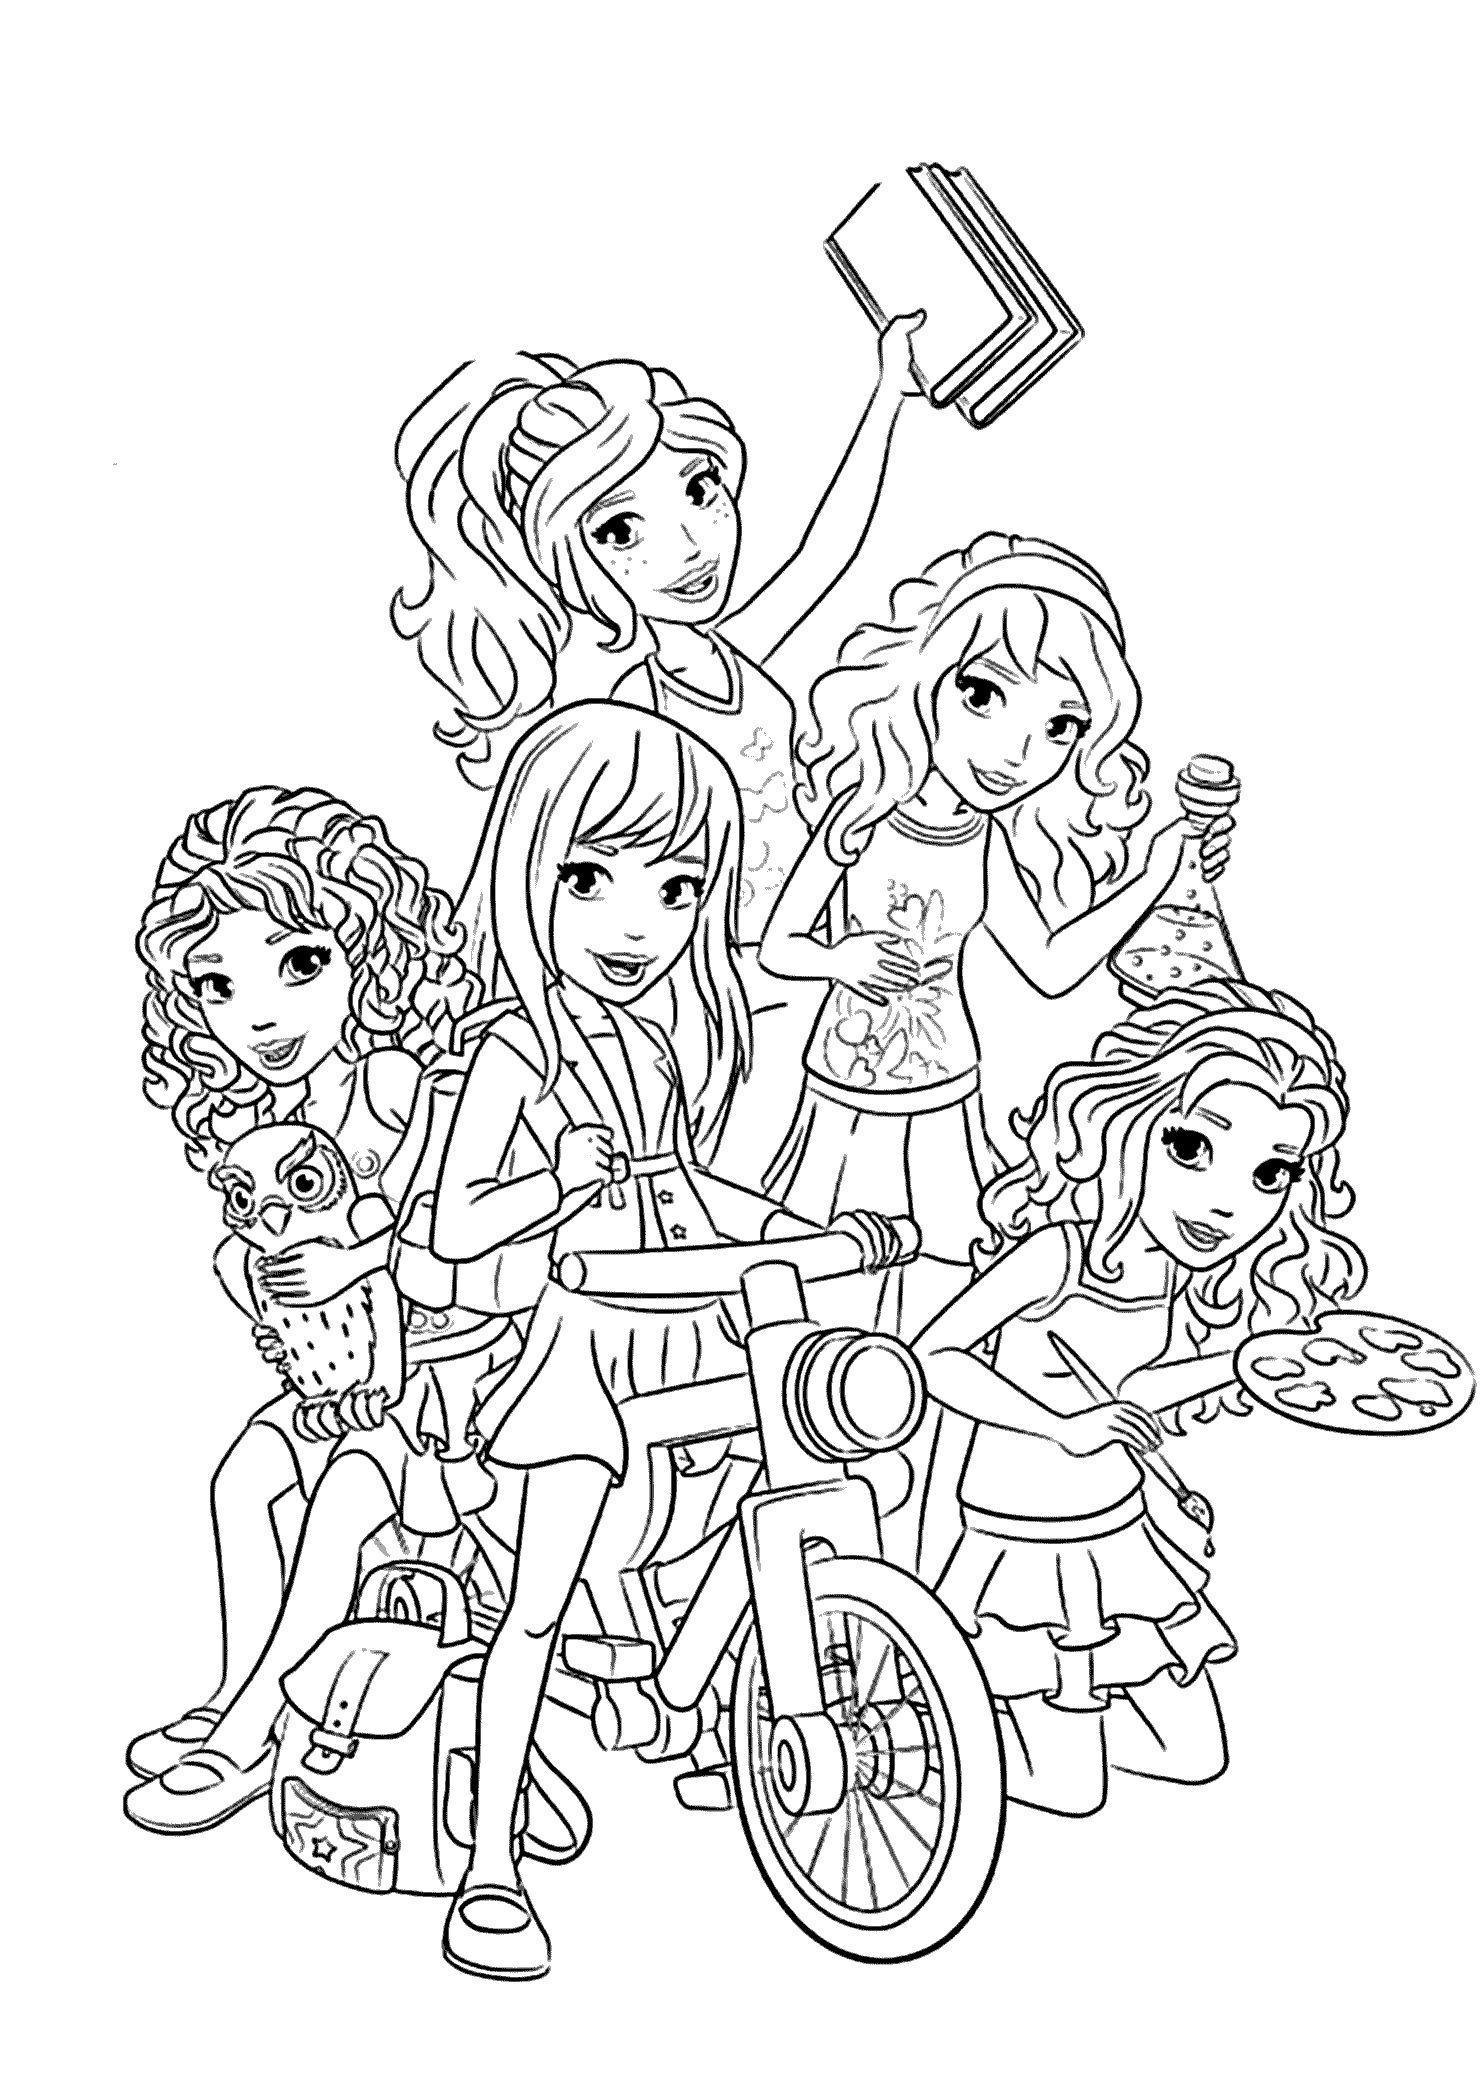 Coloriage Jurassic World Lego Friends All Coloring Page For Kids Printable Free Lego Beau Of Coloriage Lego Coloring Pages Lego Coloring Lego Friends Birthday